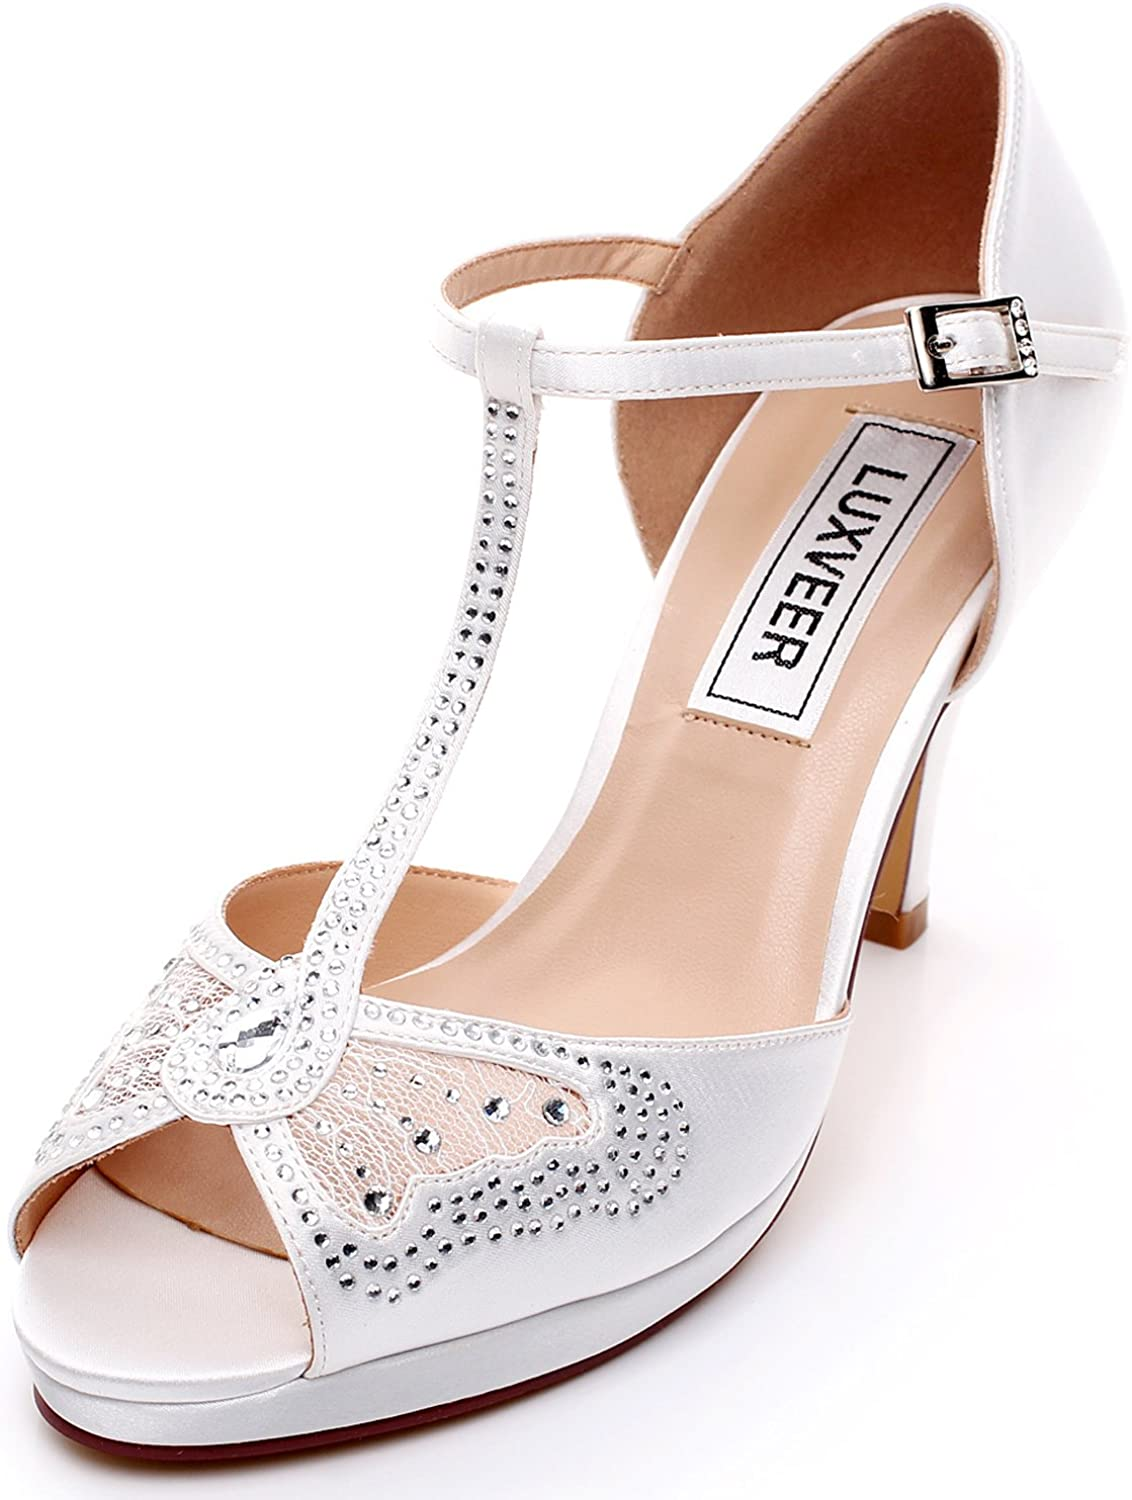 LUXVEER Women Wedding Sandals with Silver Rhinestone and Lace Butterfly - Heels 3.5inch